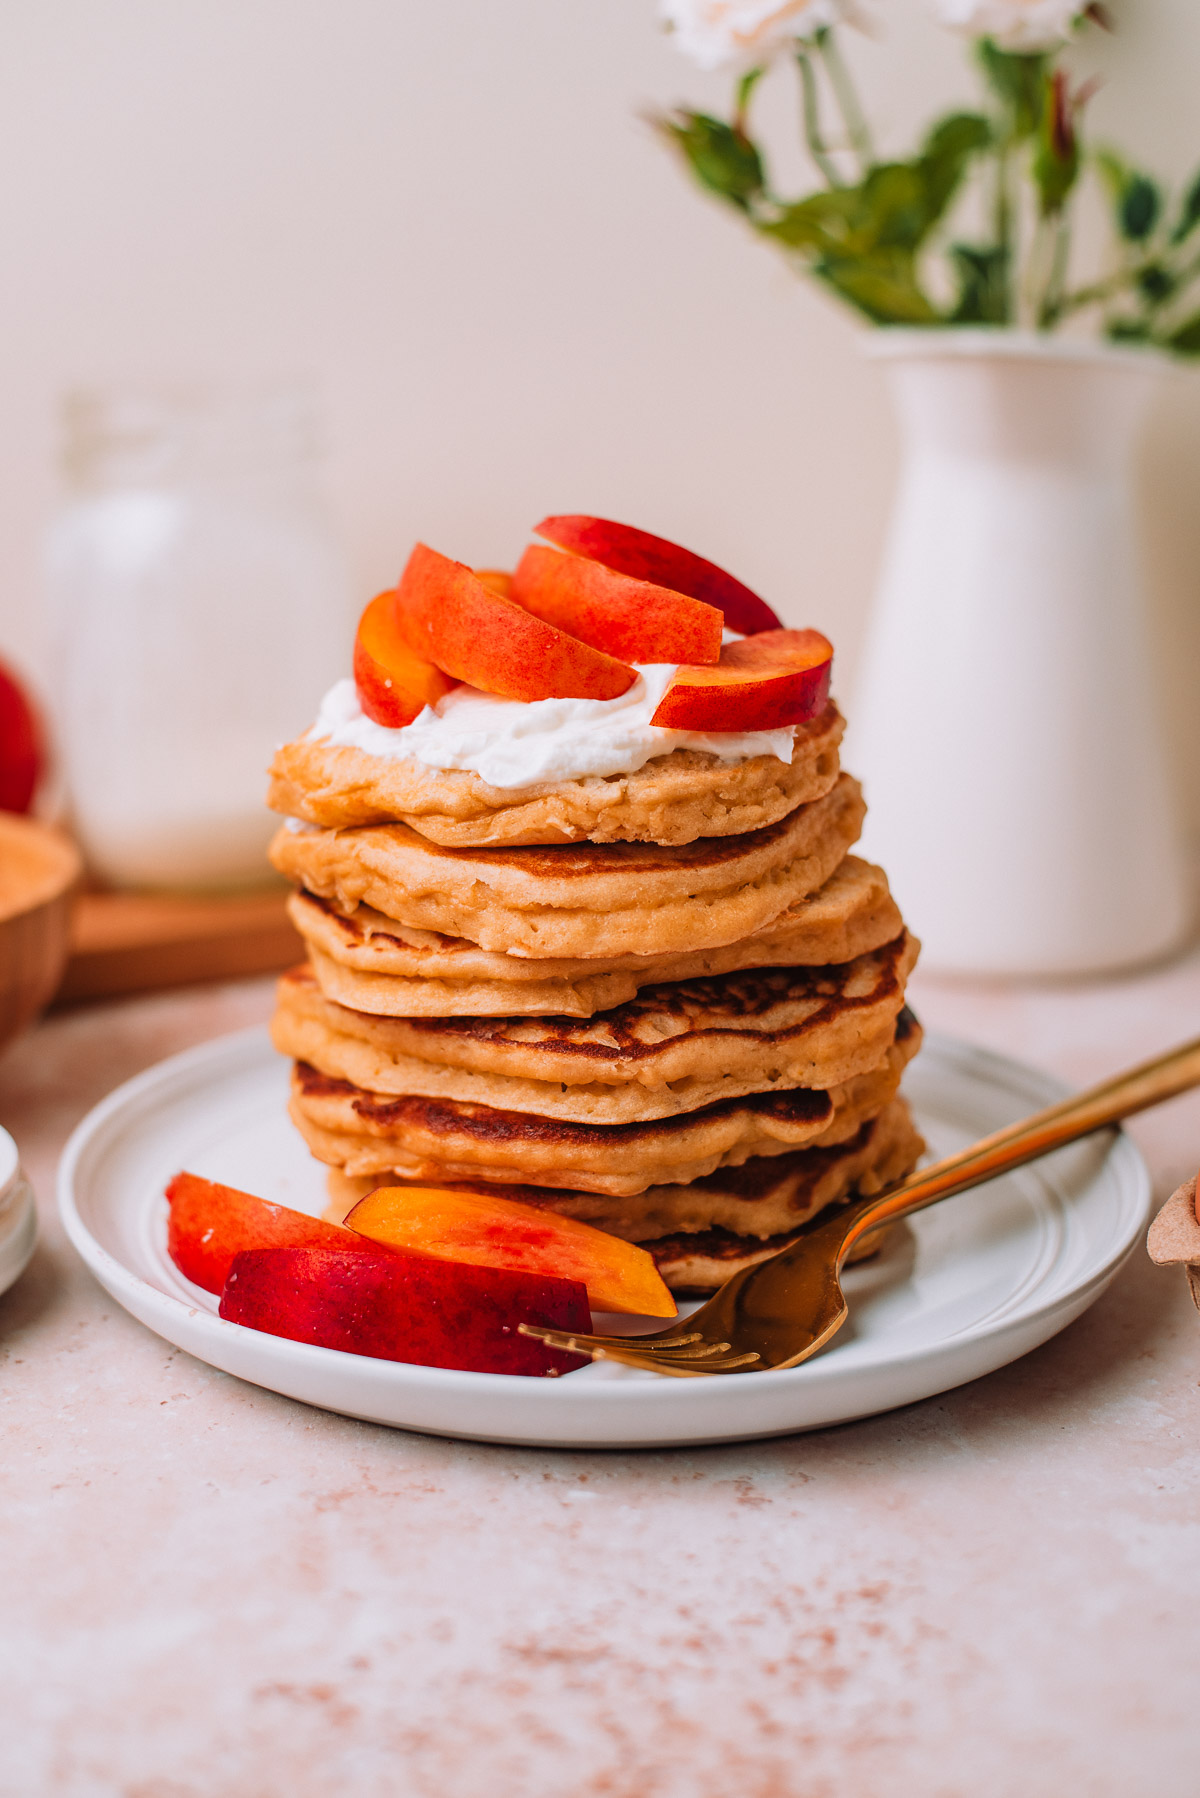 Whole Wheat Pancakes with